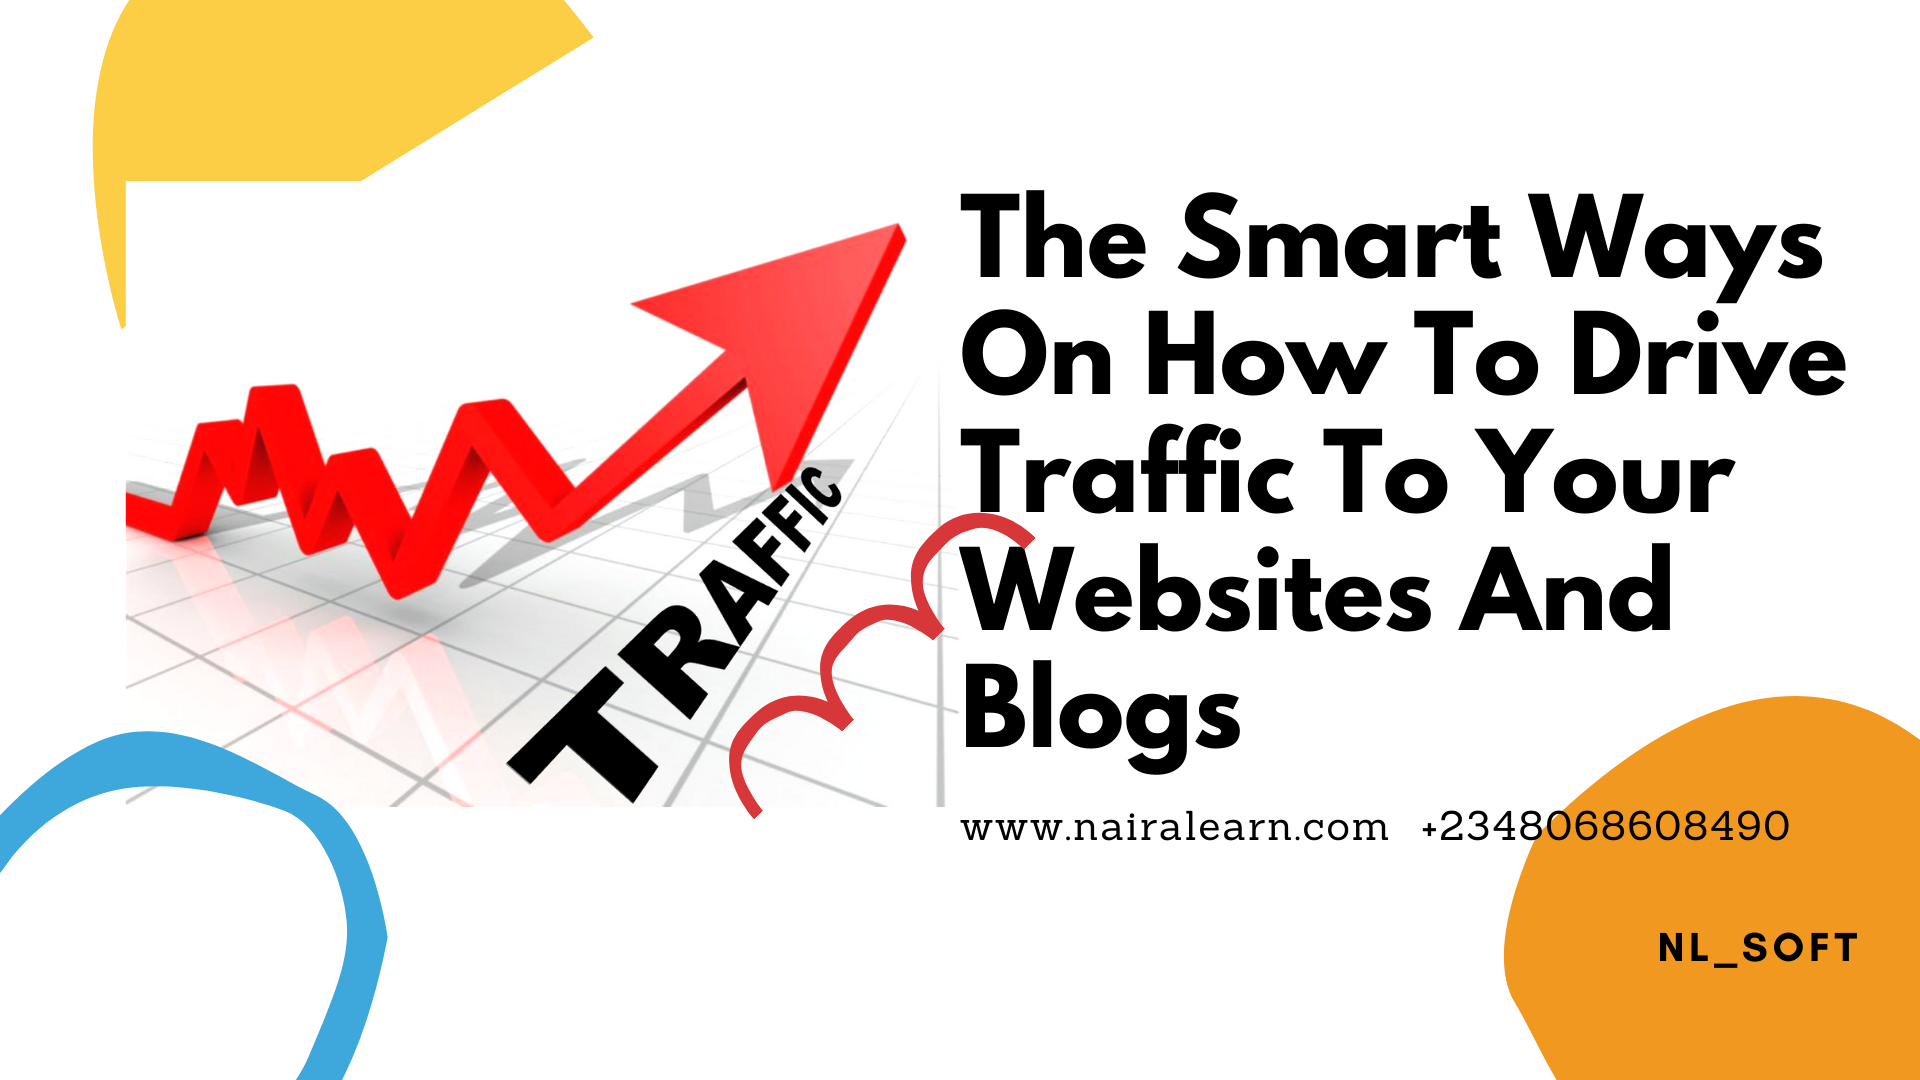 The-Smart-Ways-On-How-To-Drive-Traffic-To-Your-Websites-And-Blogs